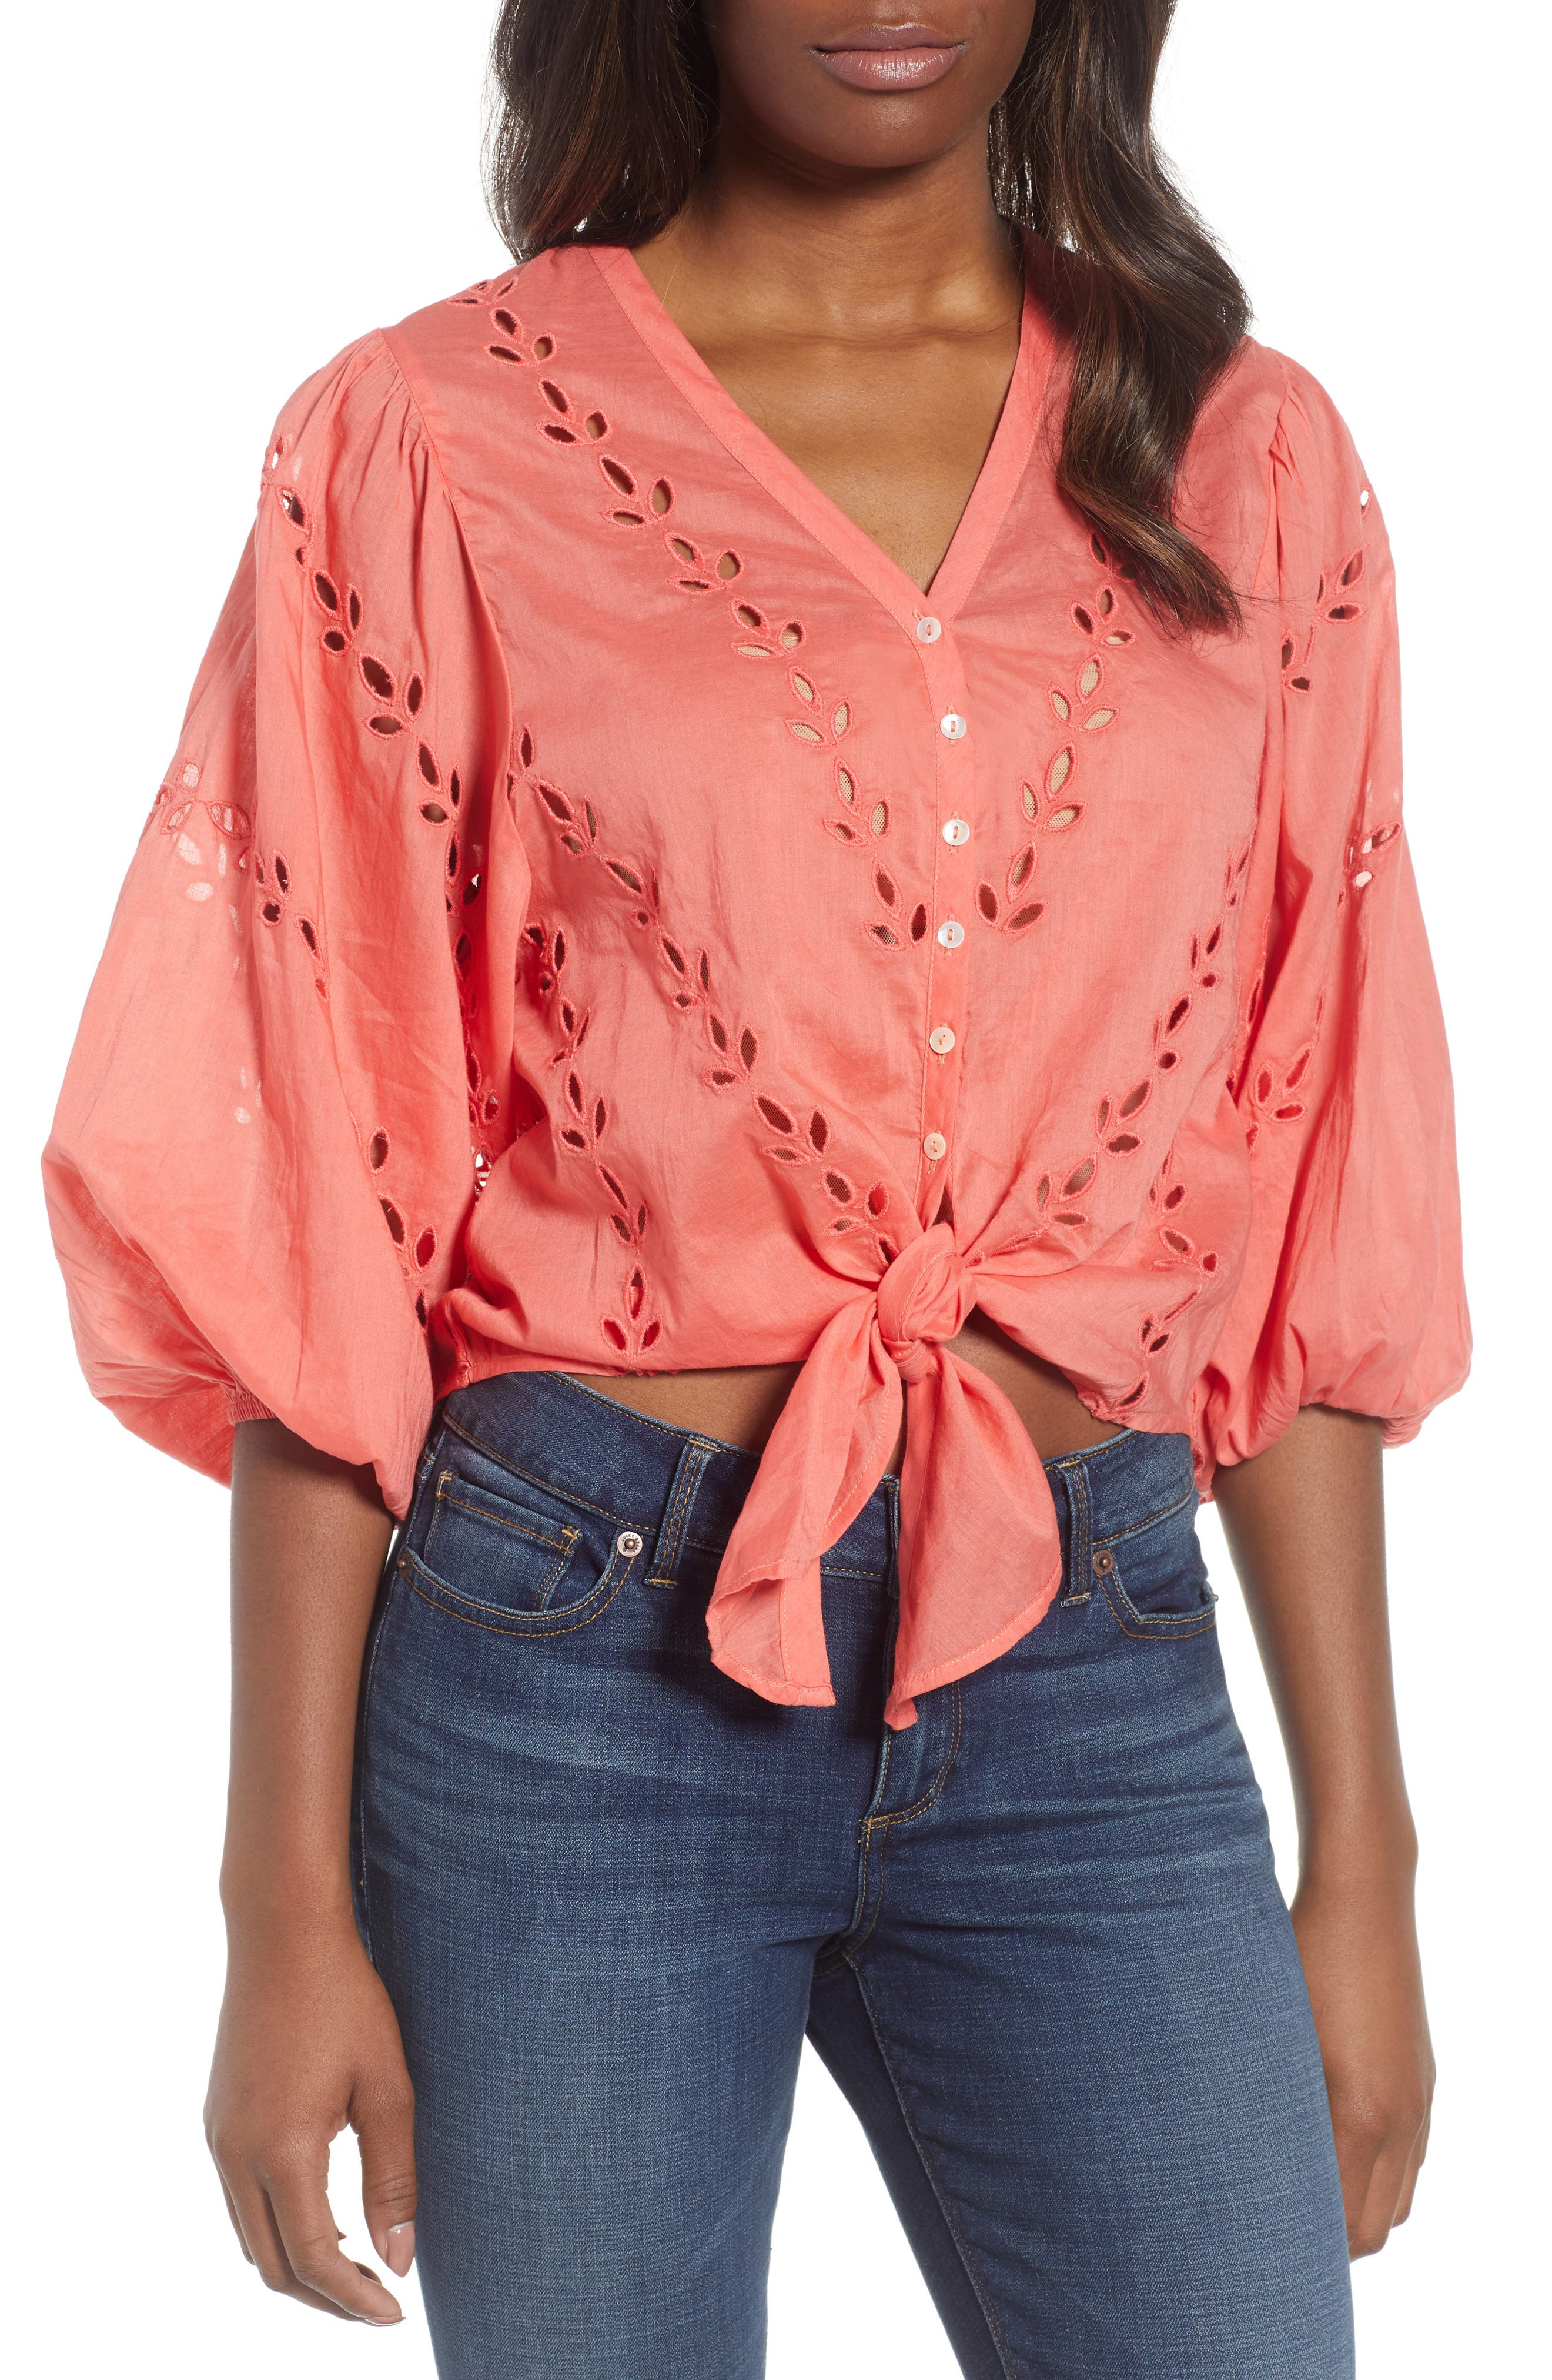 Alternate Image 1 Selected - Lucky Brand Eyelet Tie Front Cotton Peasant Blouse